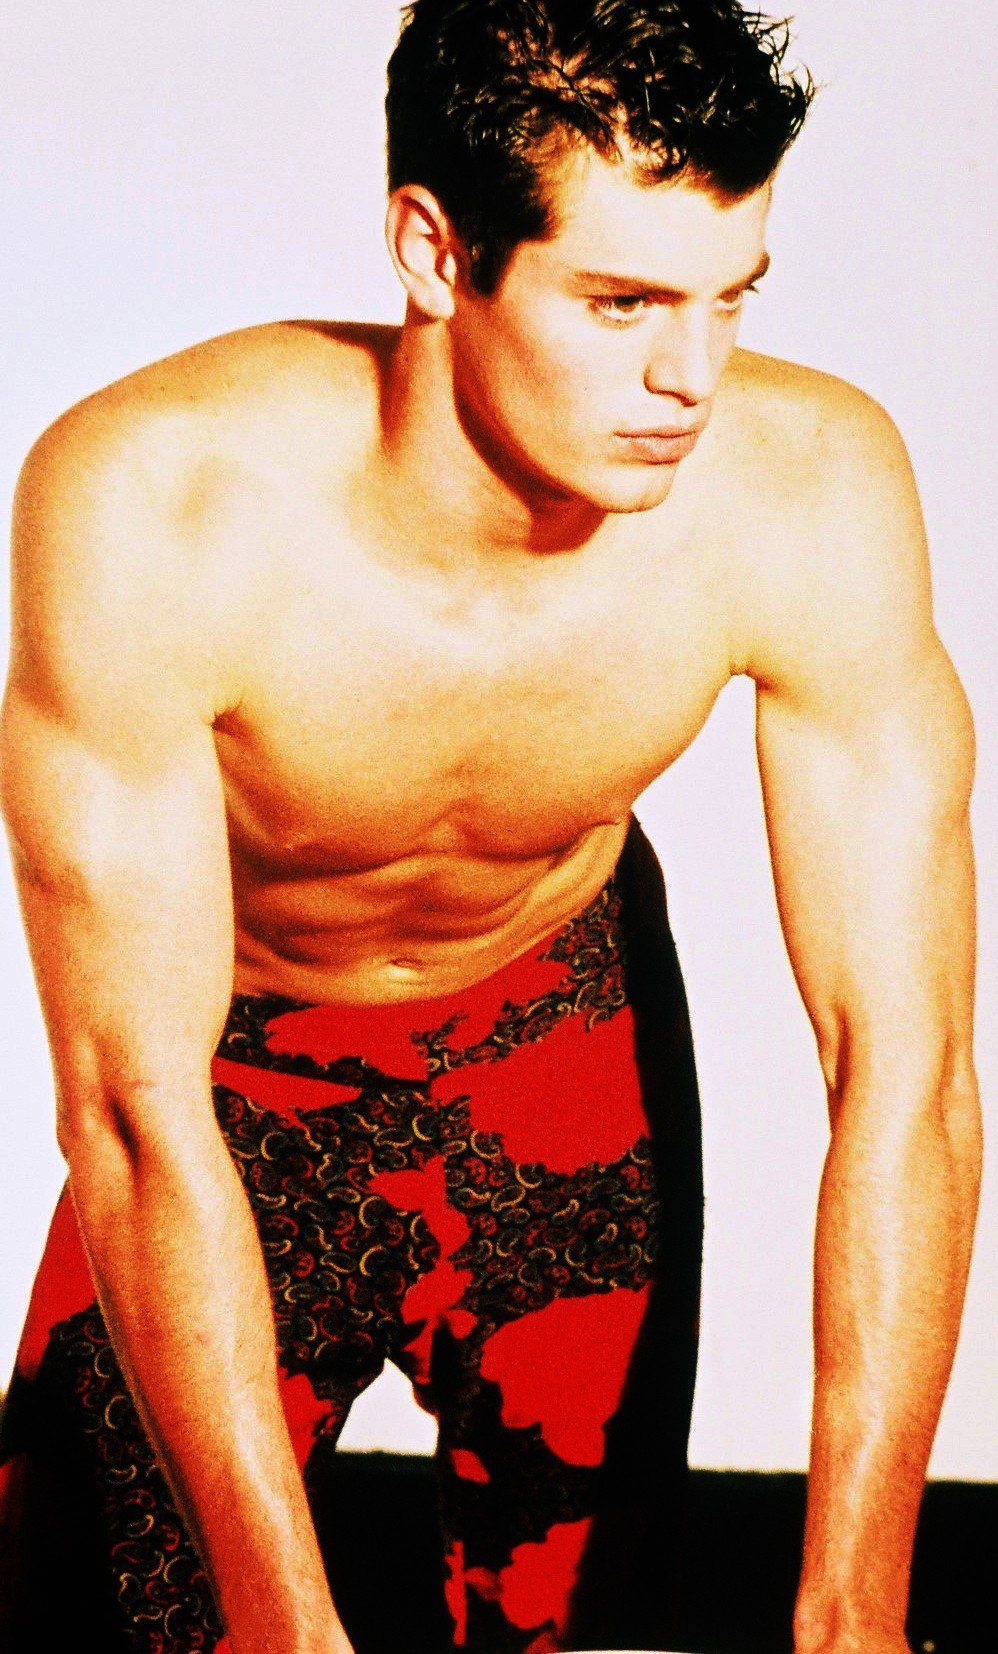 RED AND PAISLEYS CAN STILL BE WORN BY A MAN OF FITNESS.